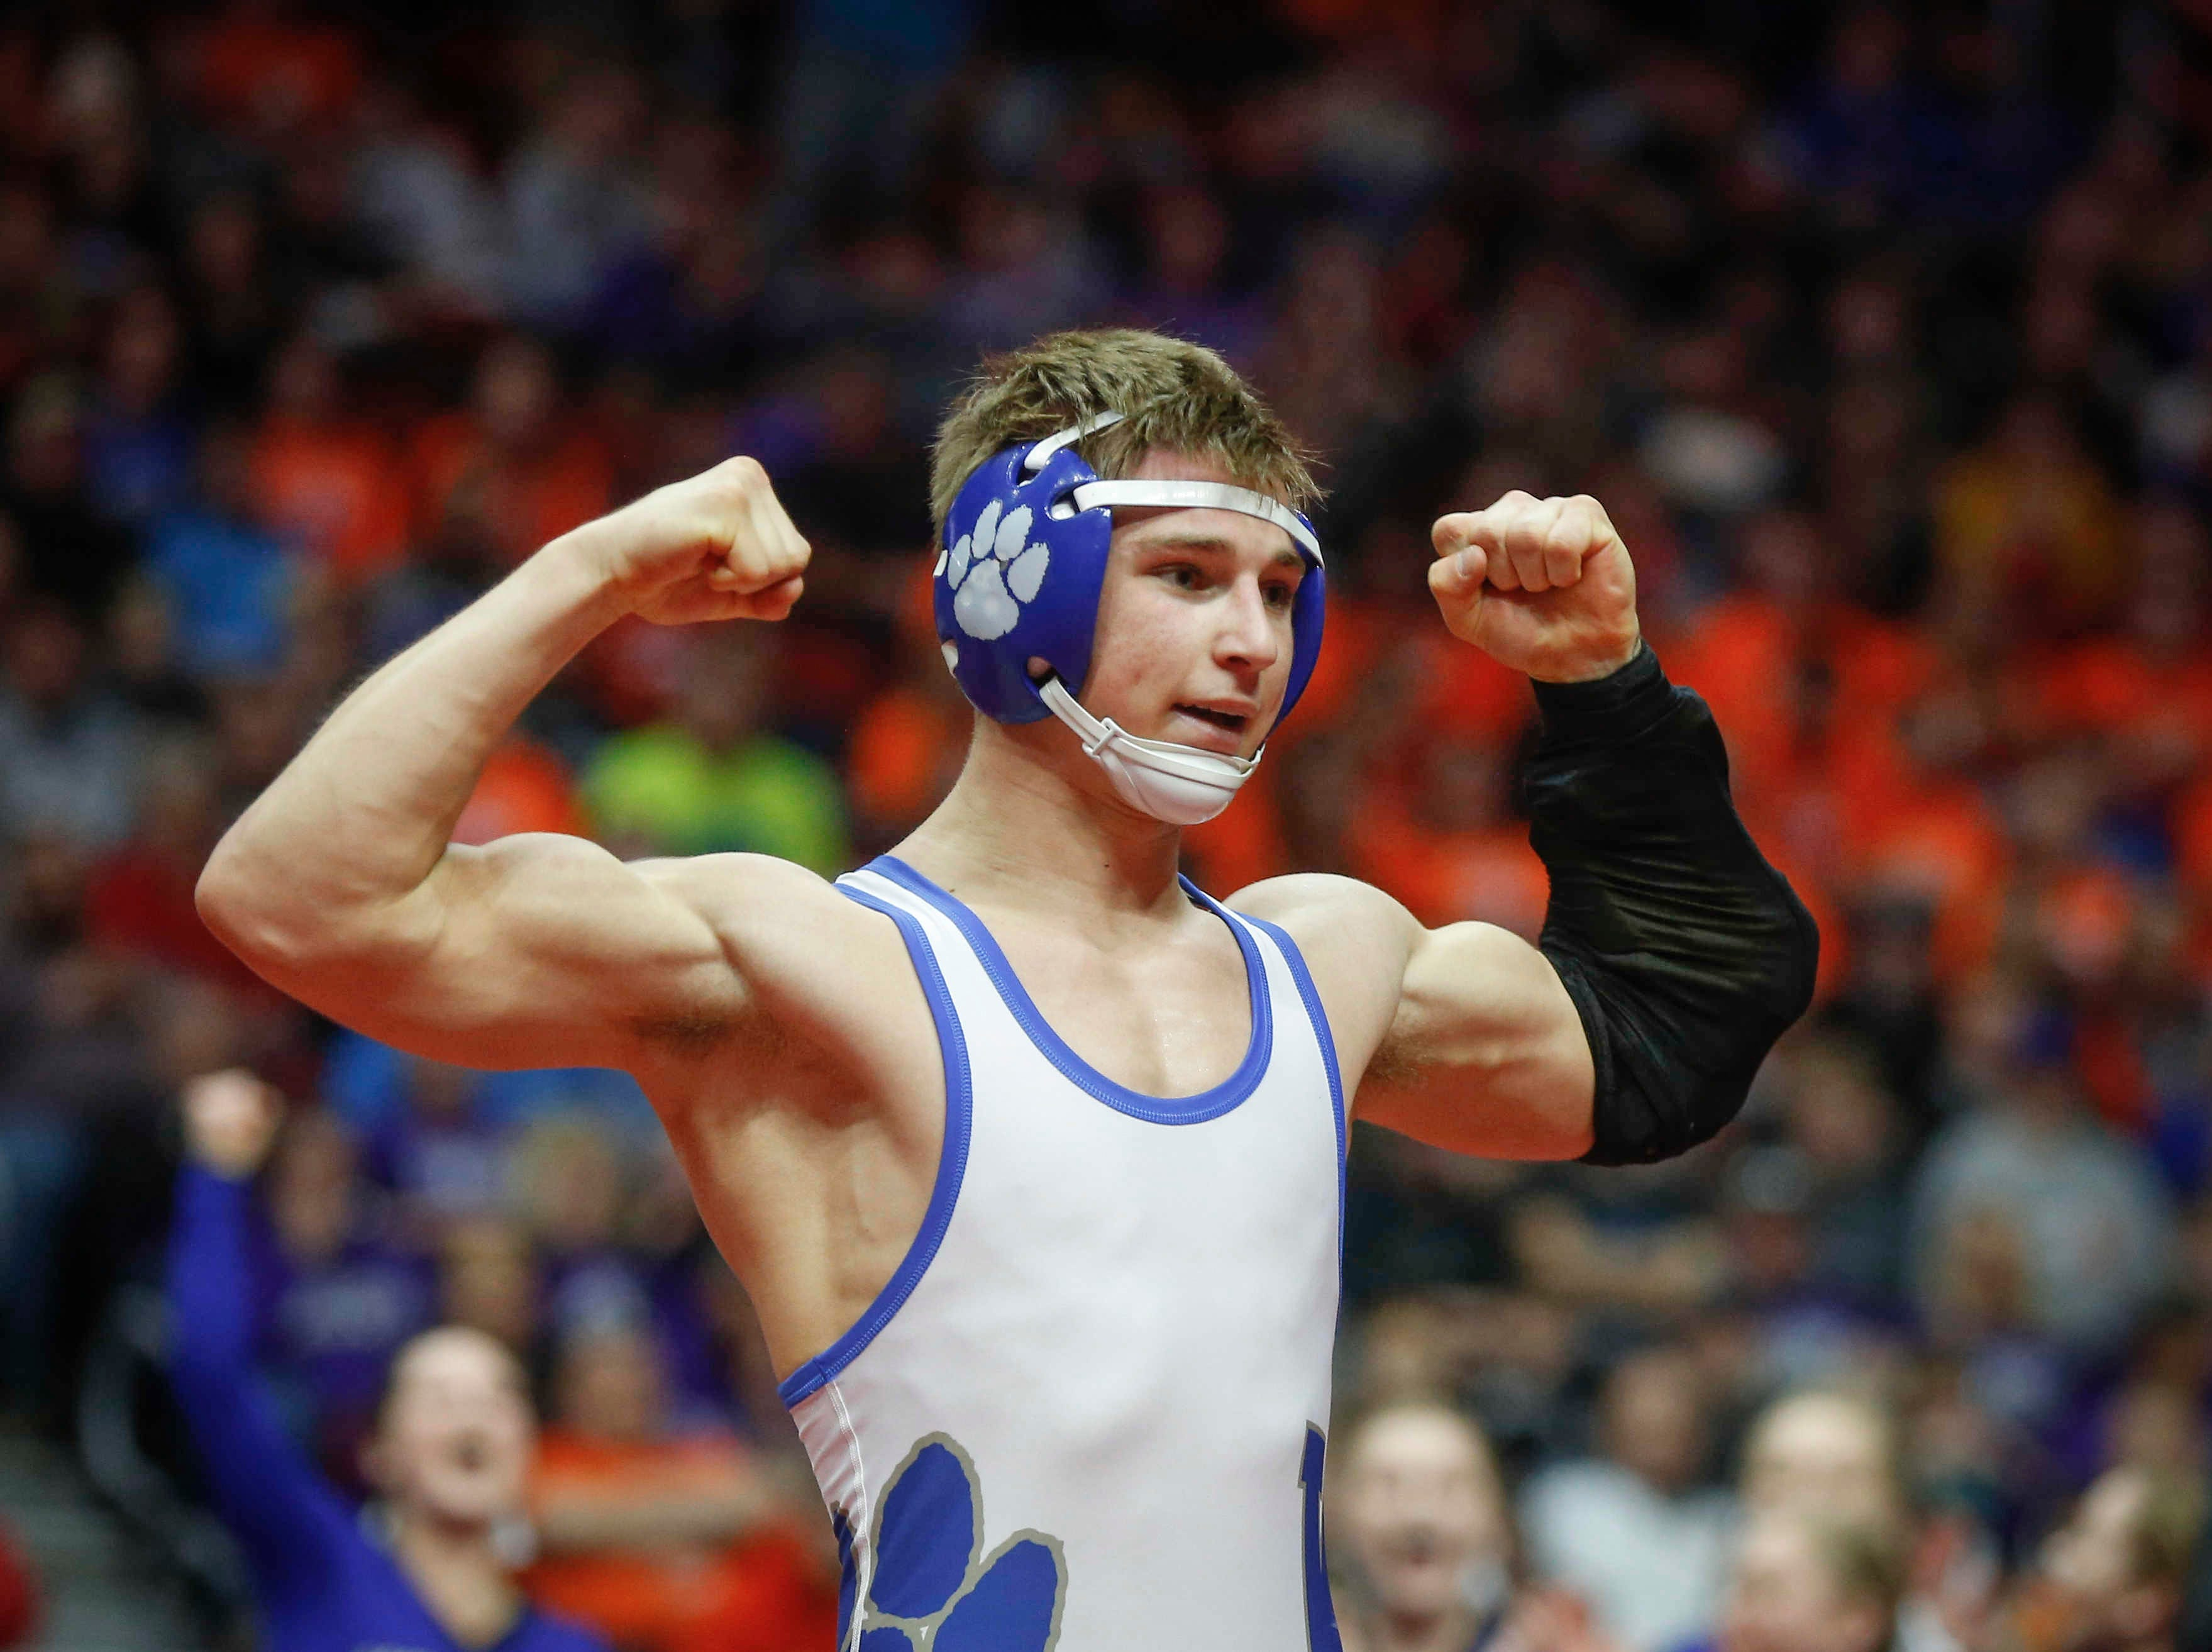 Woodbury Central junior Wade Mitchell celebrates after beating Emmetsburg senior Spencer Griffin for a Class 1A state title win at 145 pounds on Saturday, Feb. 16, 2019, at Wells Fargo Arena in Des Moines.